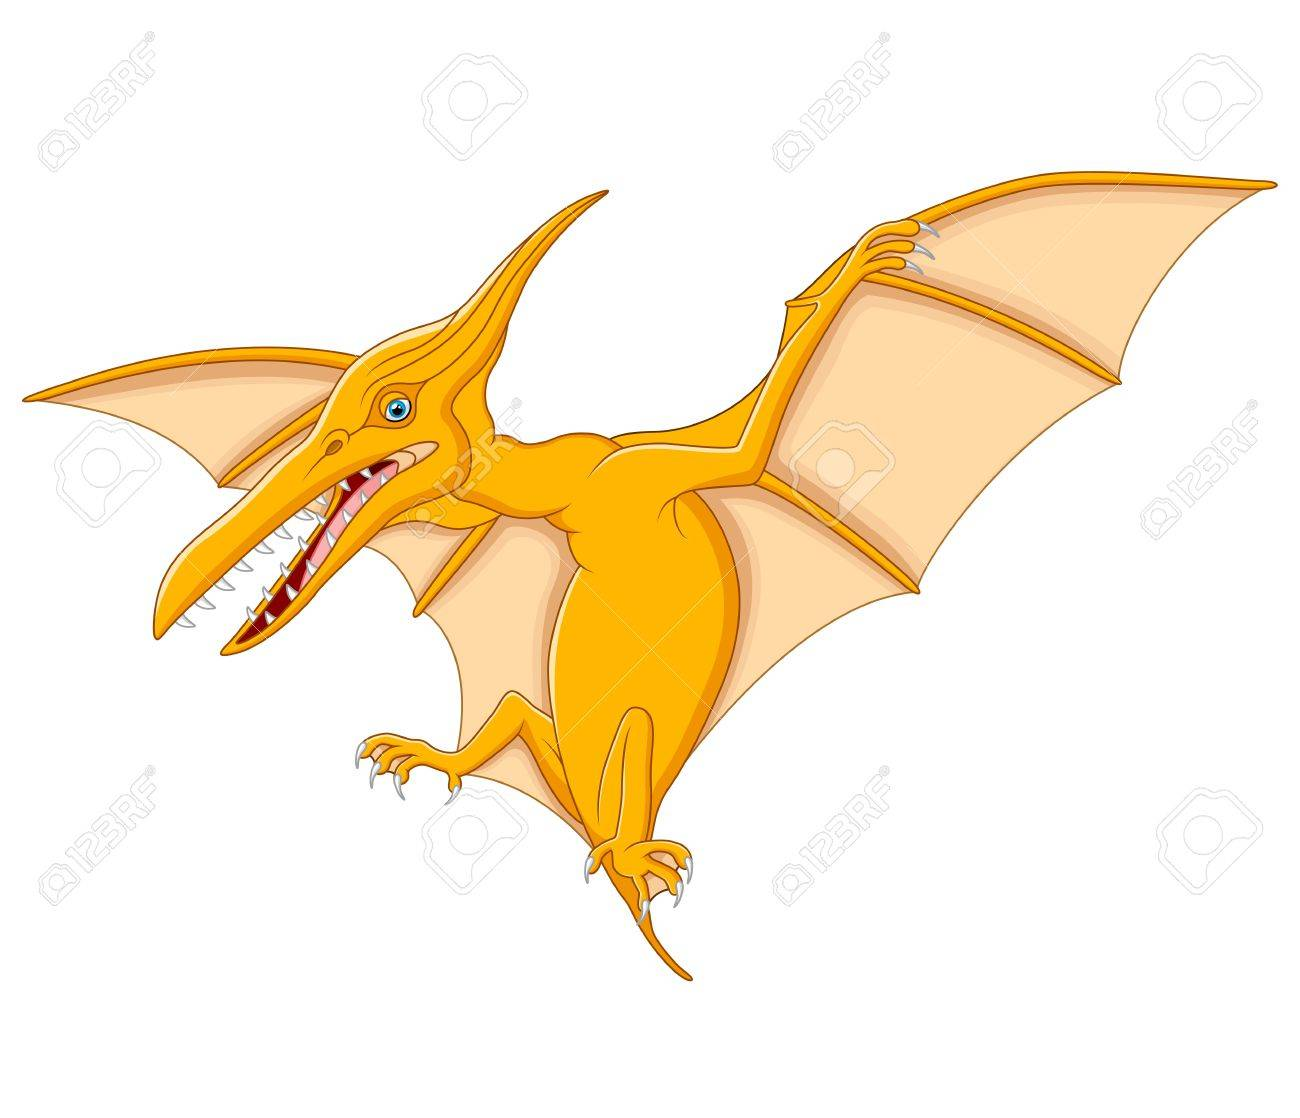 cute pterodactyl cartoon royalty free cliparts vectors and stock rh 123rf com Quetzalcoatlus and Pterodactyl Clip Art Pterodactyl Dinosaur